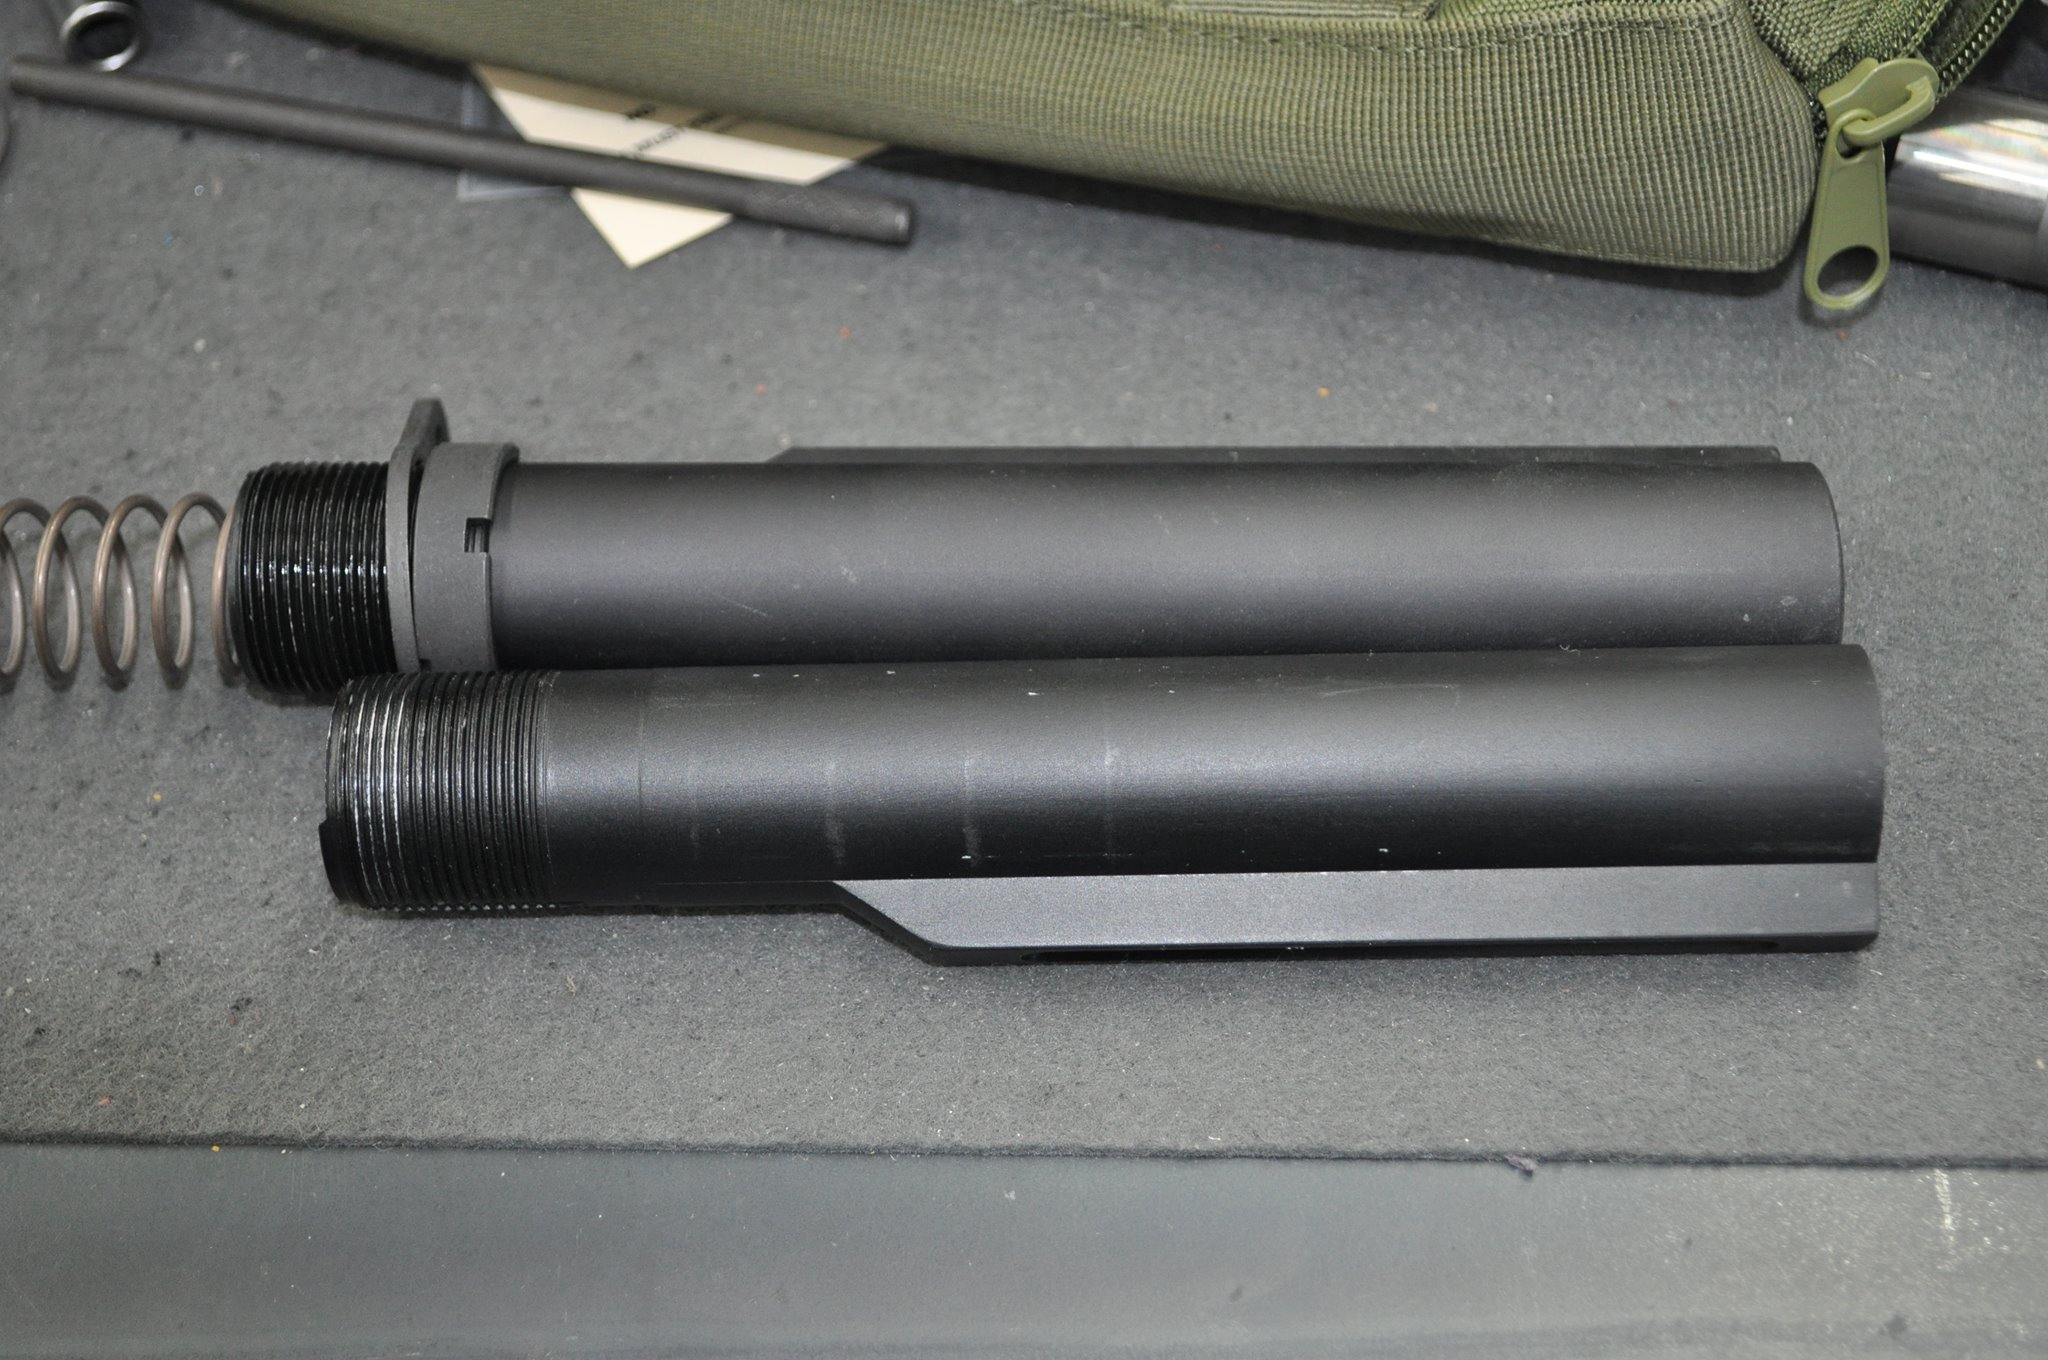 Knock off AR15 buffer tube (airsoft)